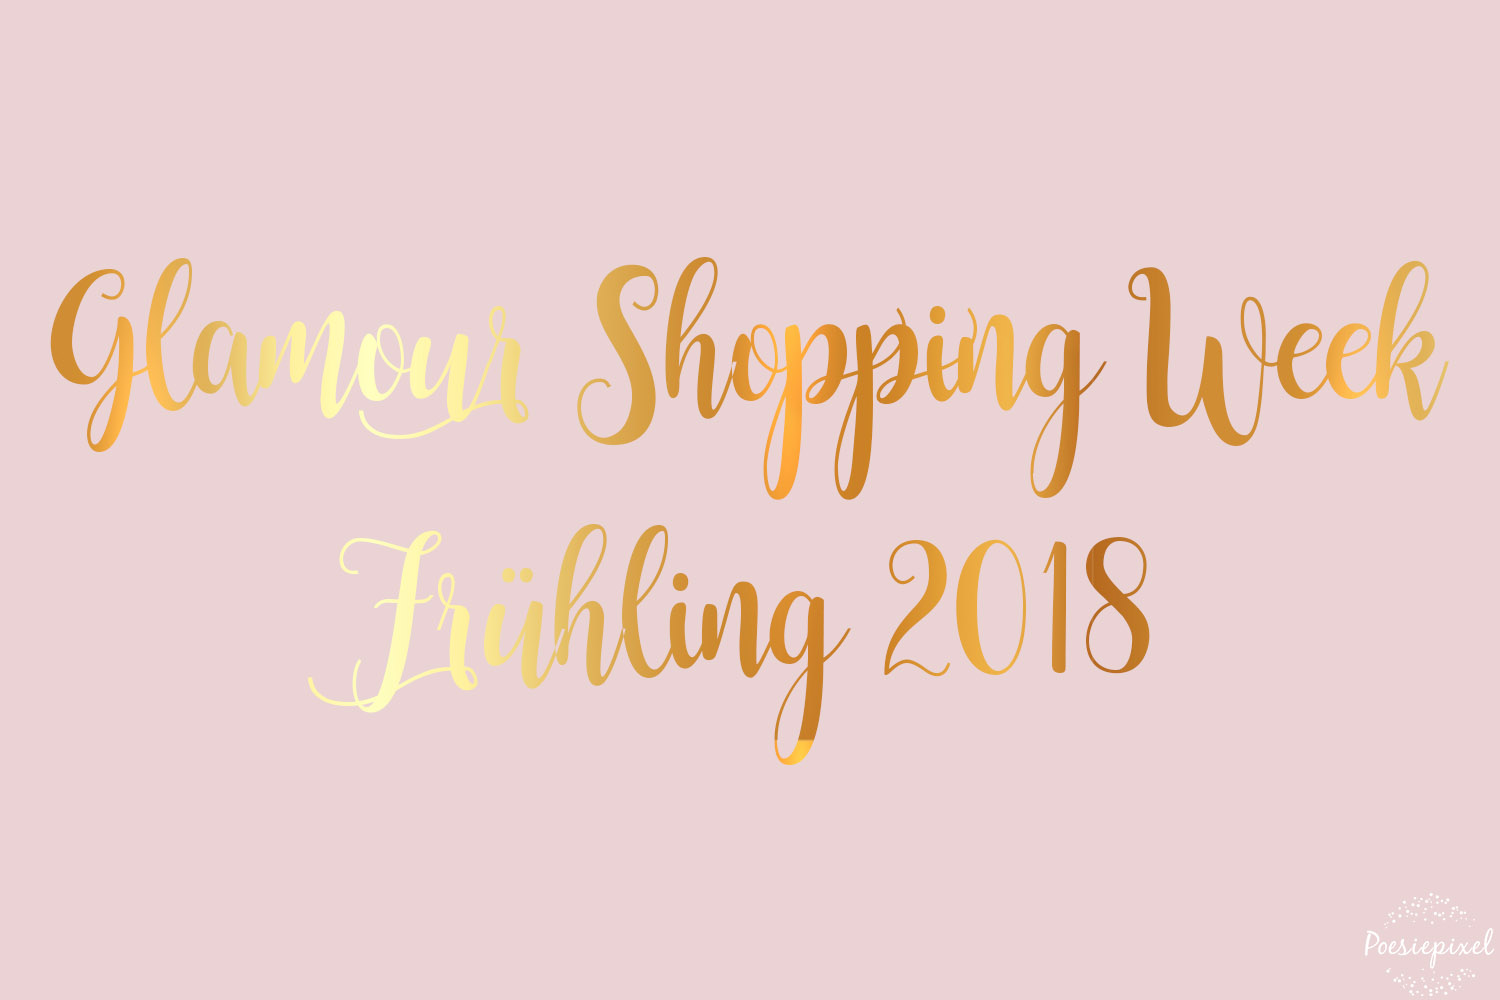 Glamour Shopping Week Codes Frühling 2018